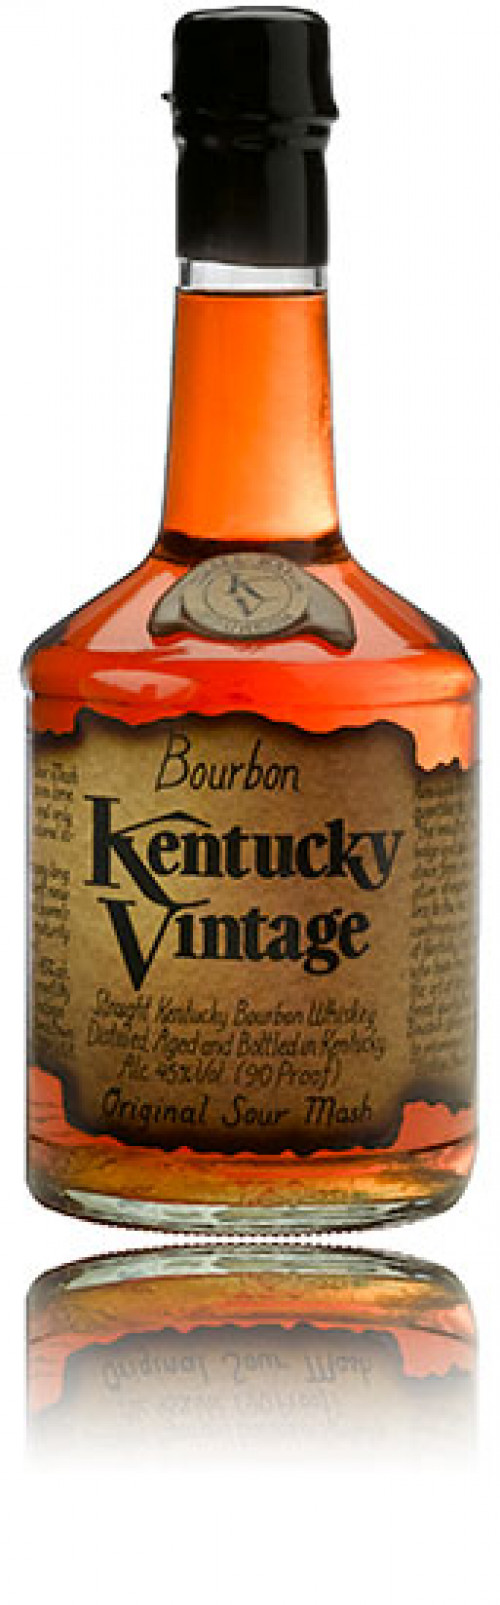 Kentucky Vintage Bourbon 750ml